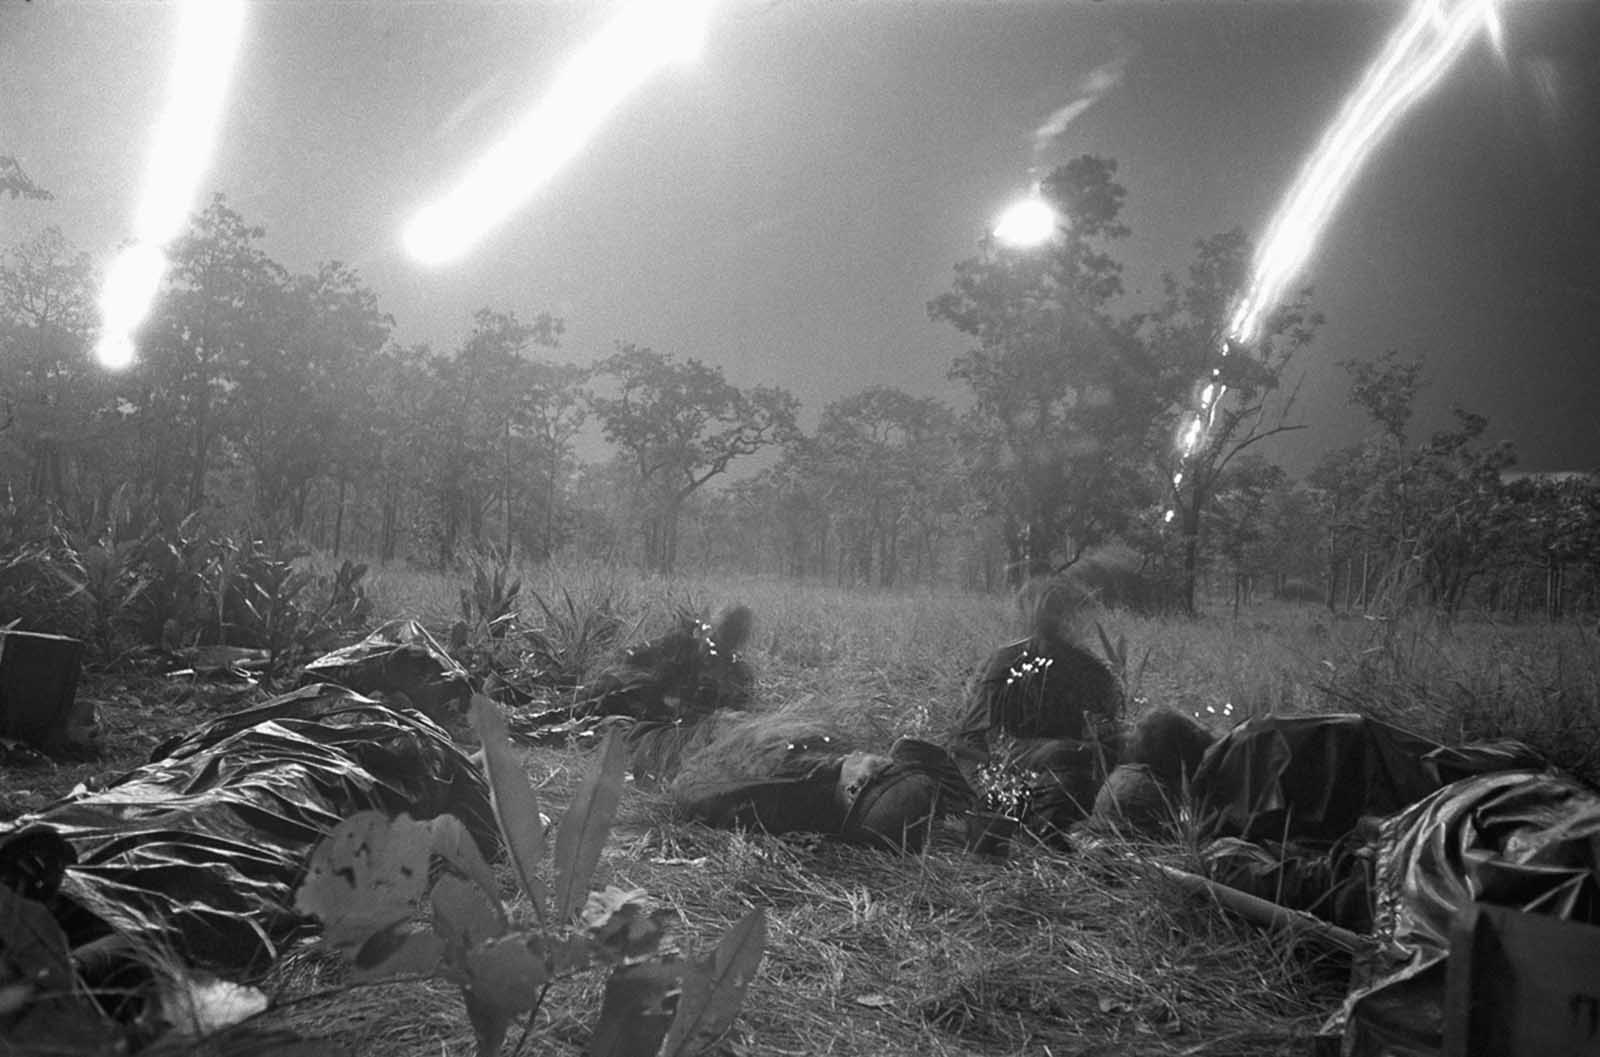 Flares from planes light a field covered with the dead and wounded of the ambushed battalion of the U.S. 1st Cavalry Division in the Ia Drang Valley, Vietnam, on November 18, 1965, during a fierce battle that had been raging for days. Units of the division were battling to hold their lines against what was estimated to be a regiment of North Vietnamese soldiers. Bodies of the slain soldiers were carried to this clearing with their gear to await evacuation by helicopter.